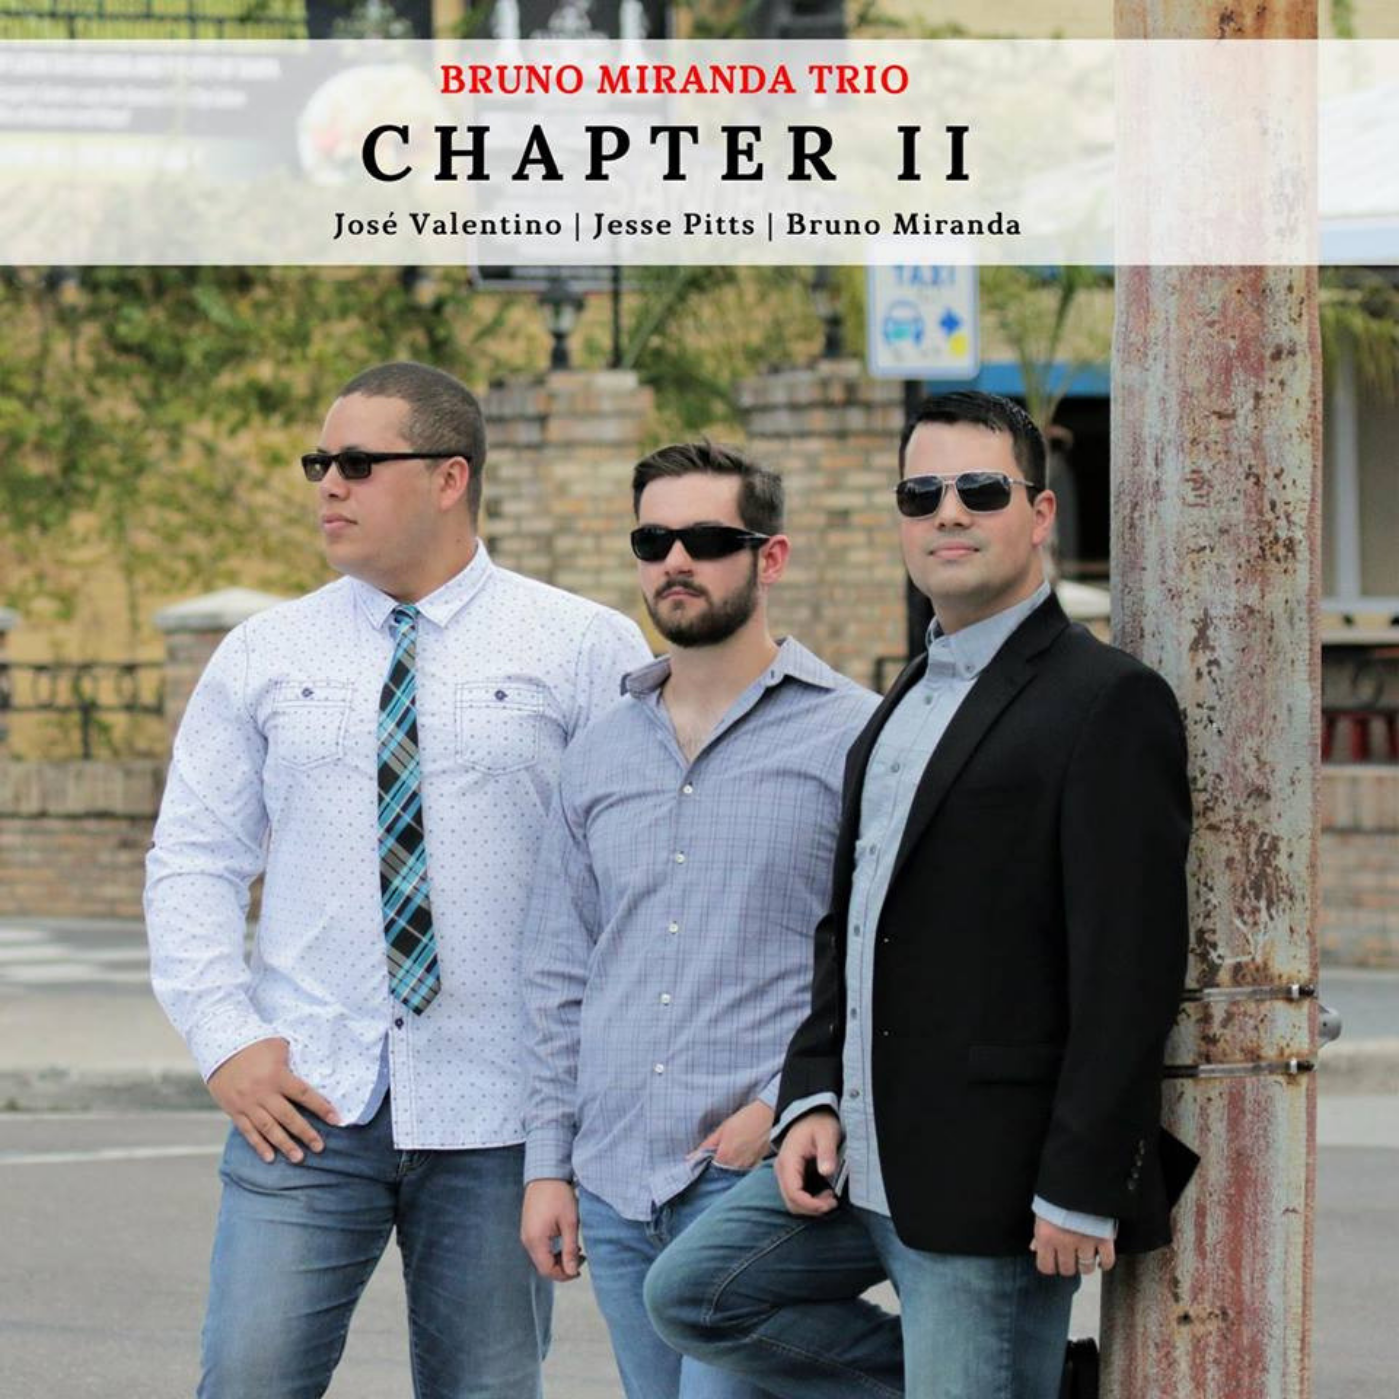 A modern approach to Jazz-fusion trio music featuring José Valentino on bass and flute, Bruno Miranda on piano, and Jesse Pitts on drums. This album exudes sophistication, elegance, patience, and joy, as the trio are comprised of a life-long friendship.